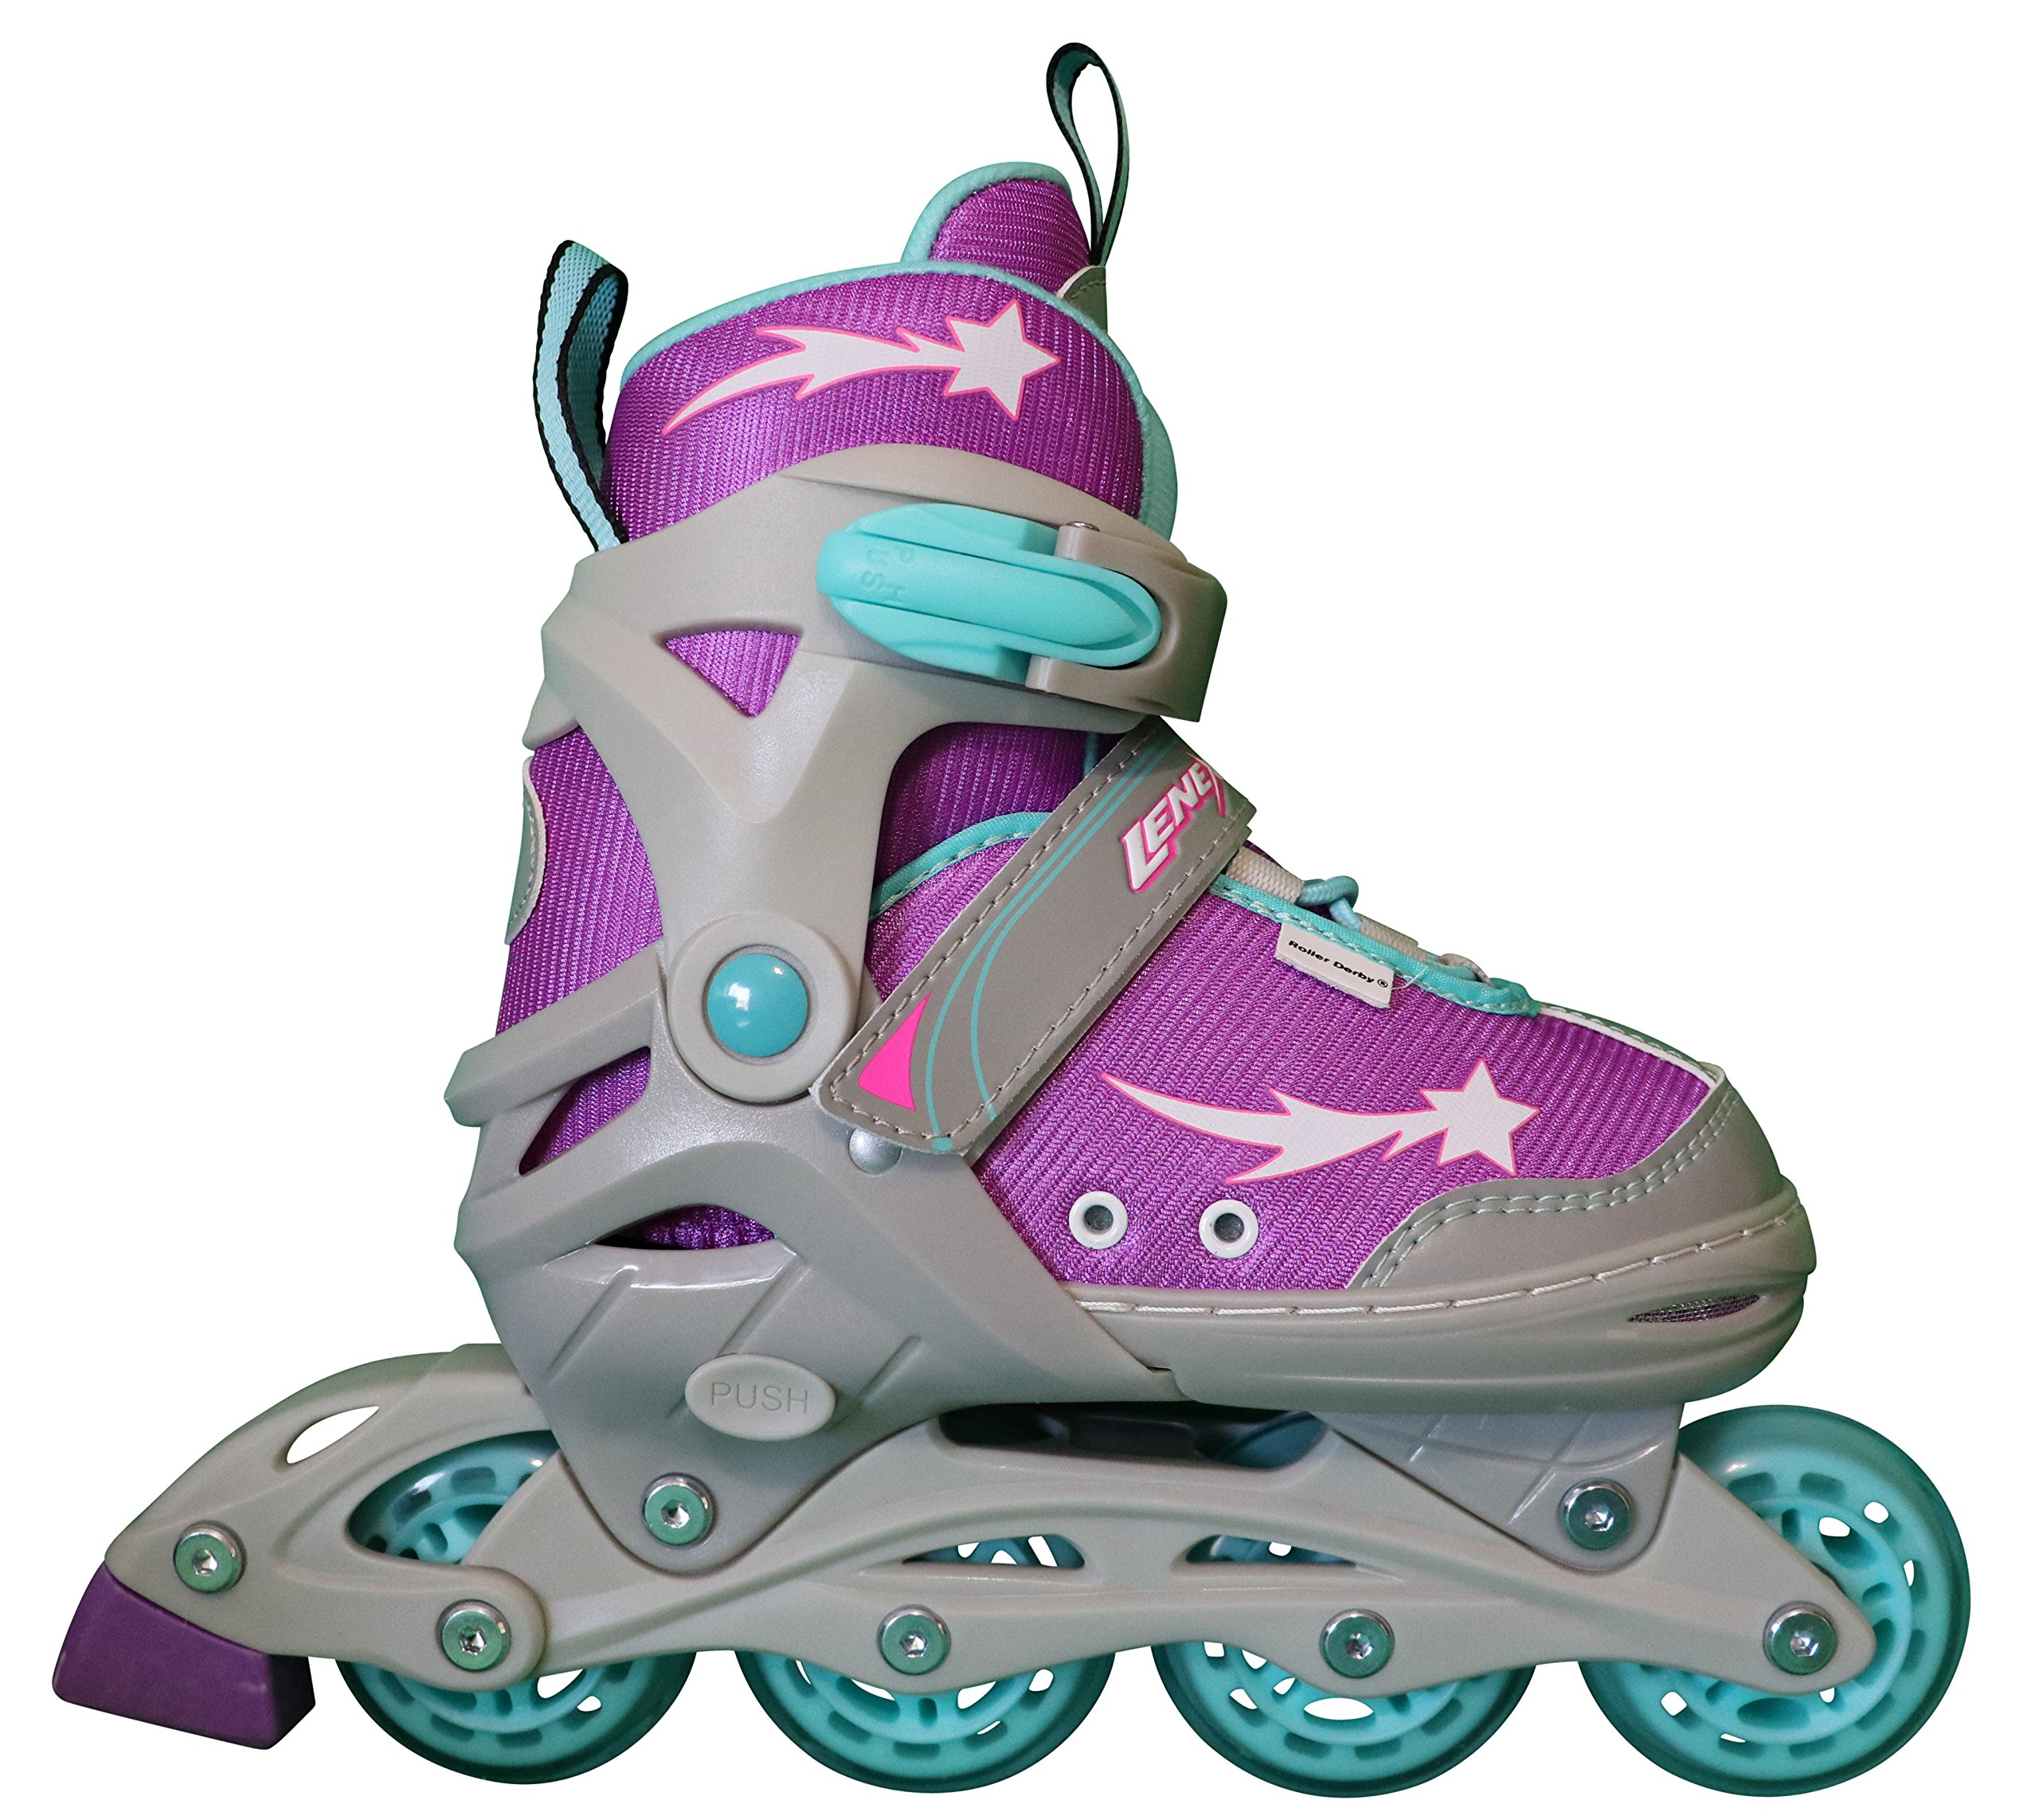 Lenexa Inline Skates for Girls with Adjustable Sizing Athena Kids in-line roller skate blades | Comfortable fit | Safety non-slip wheels | Made for Fun (Purple/Grey/Blue, Small)